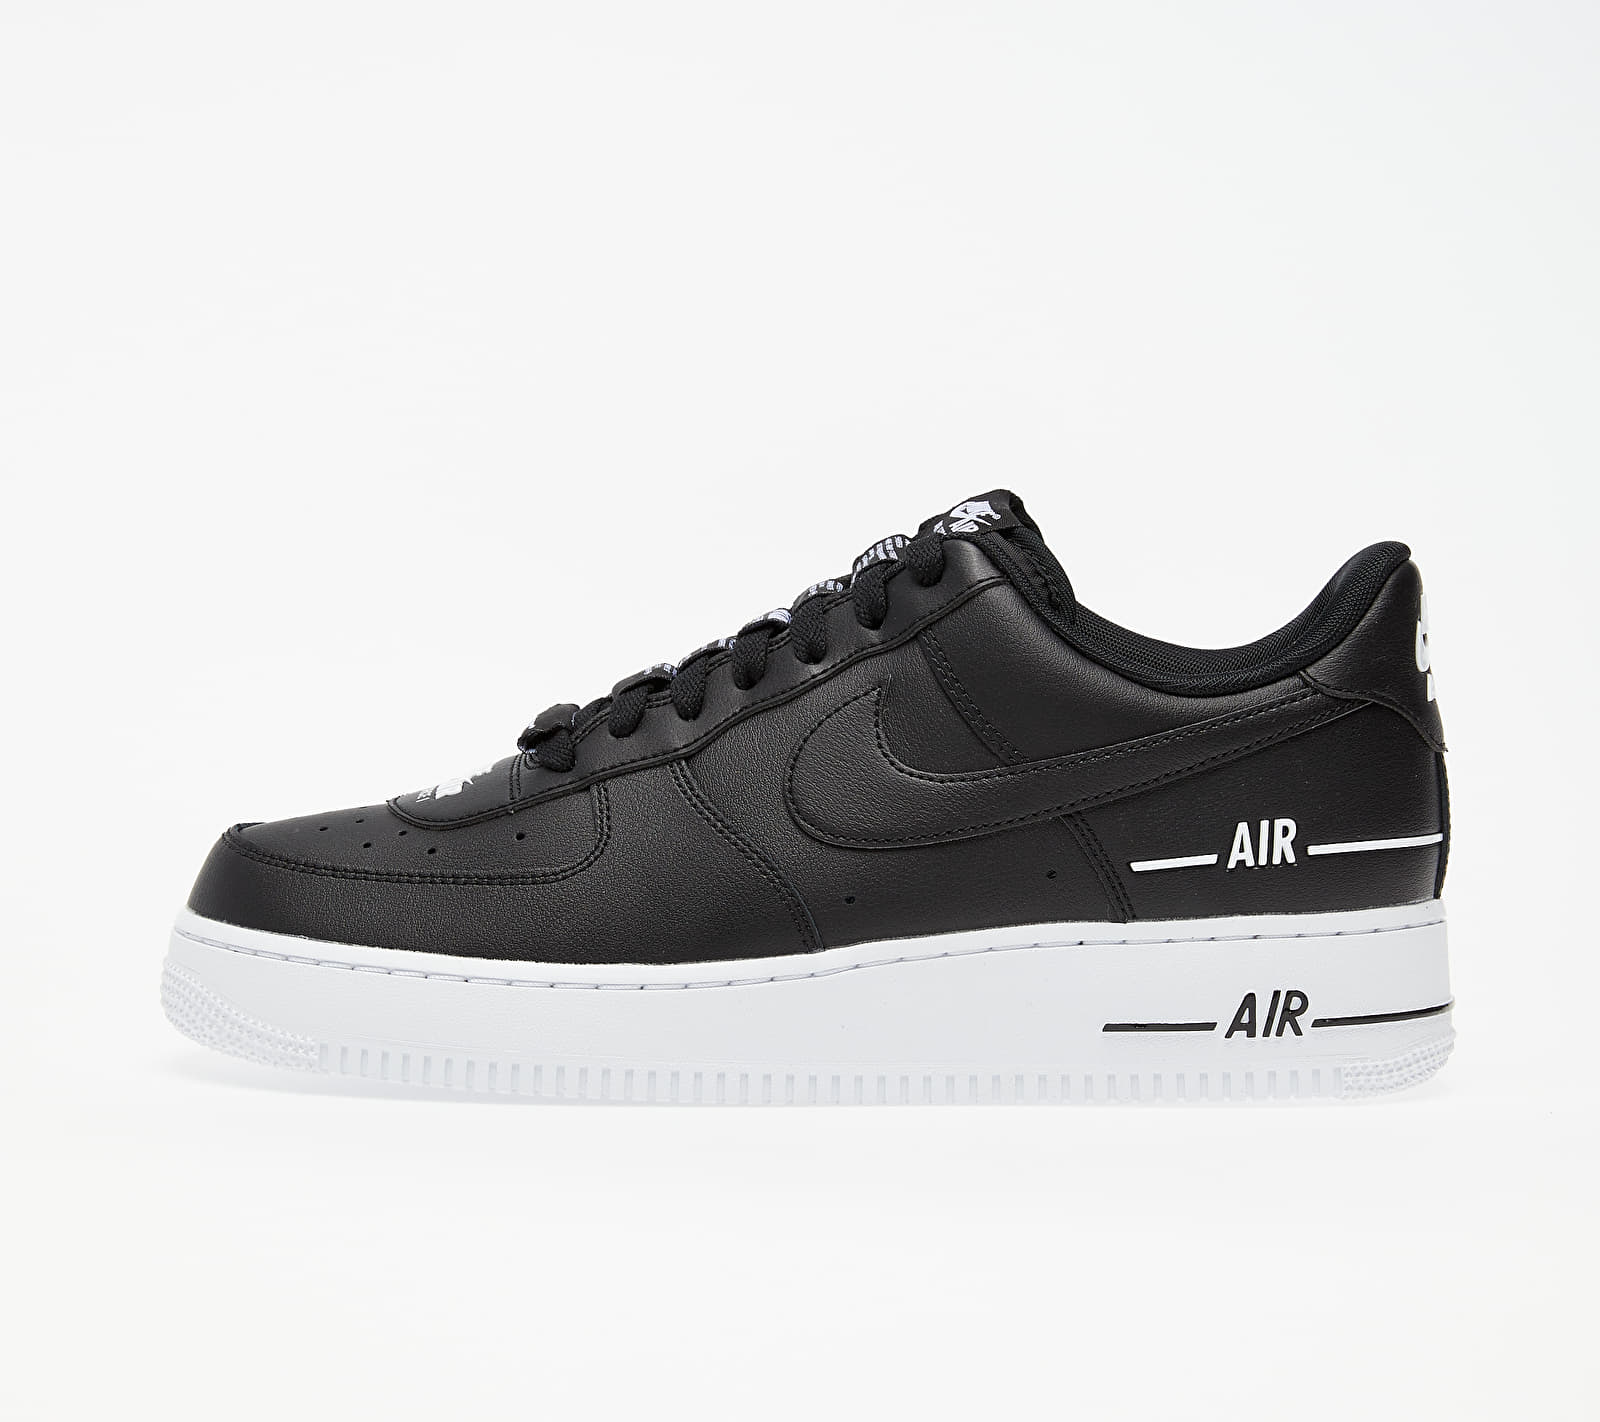 Air Force 1 '07 Lv8 3 Black/ Black-White EUR 44.5